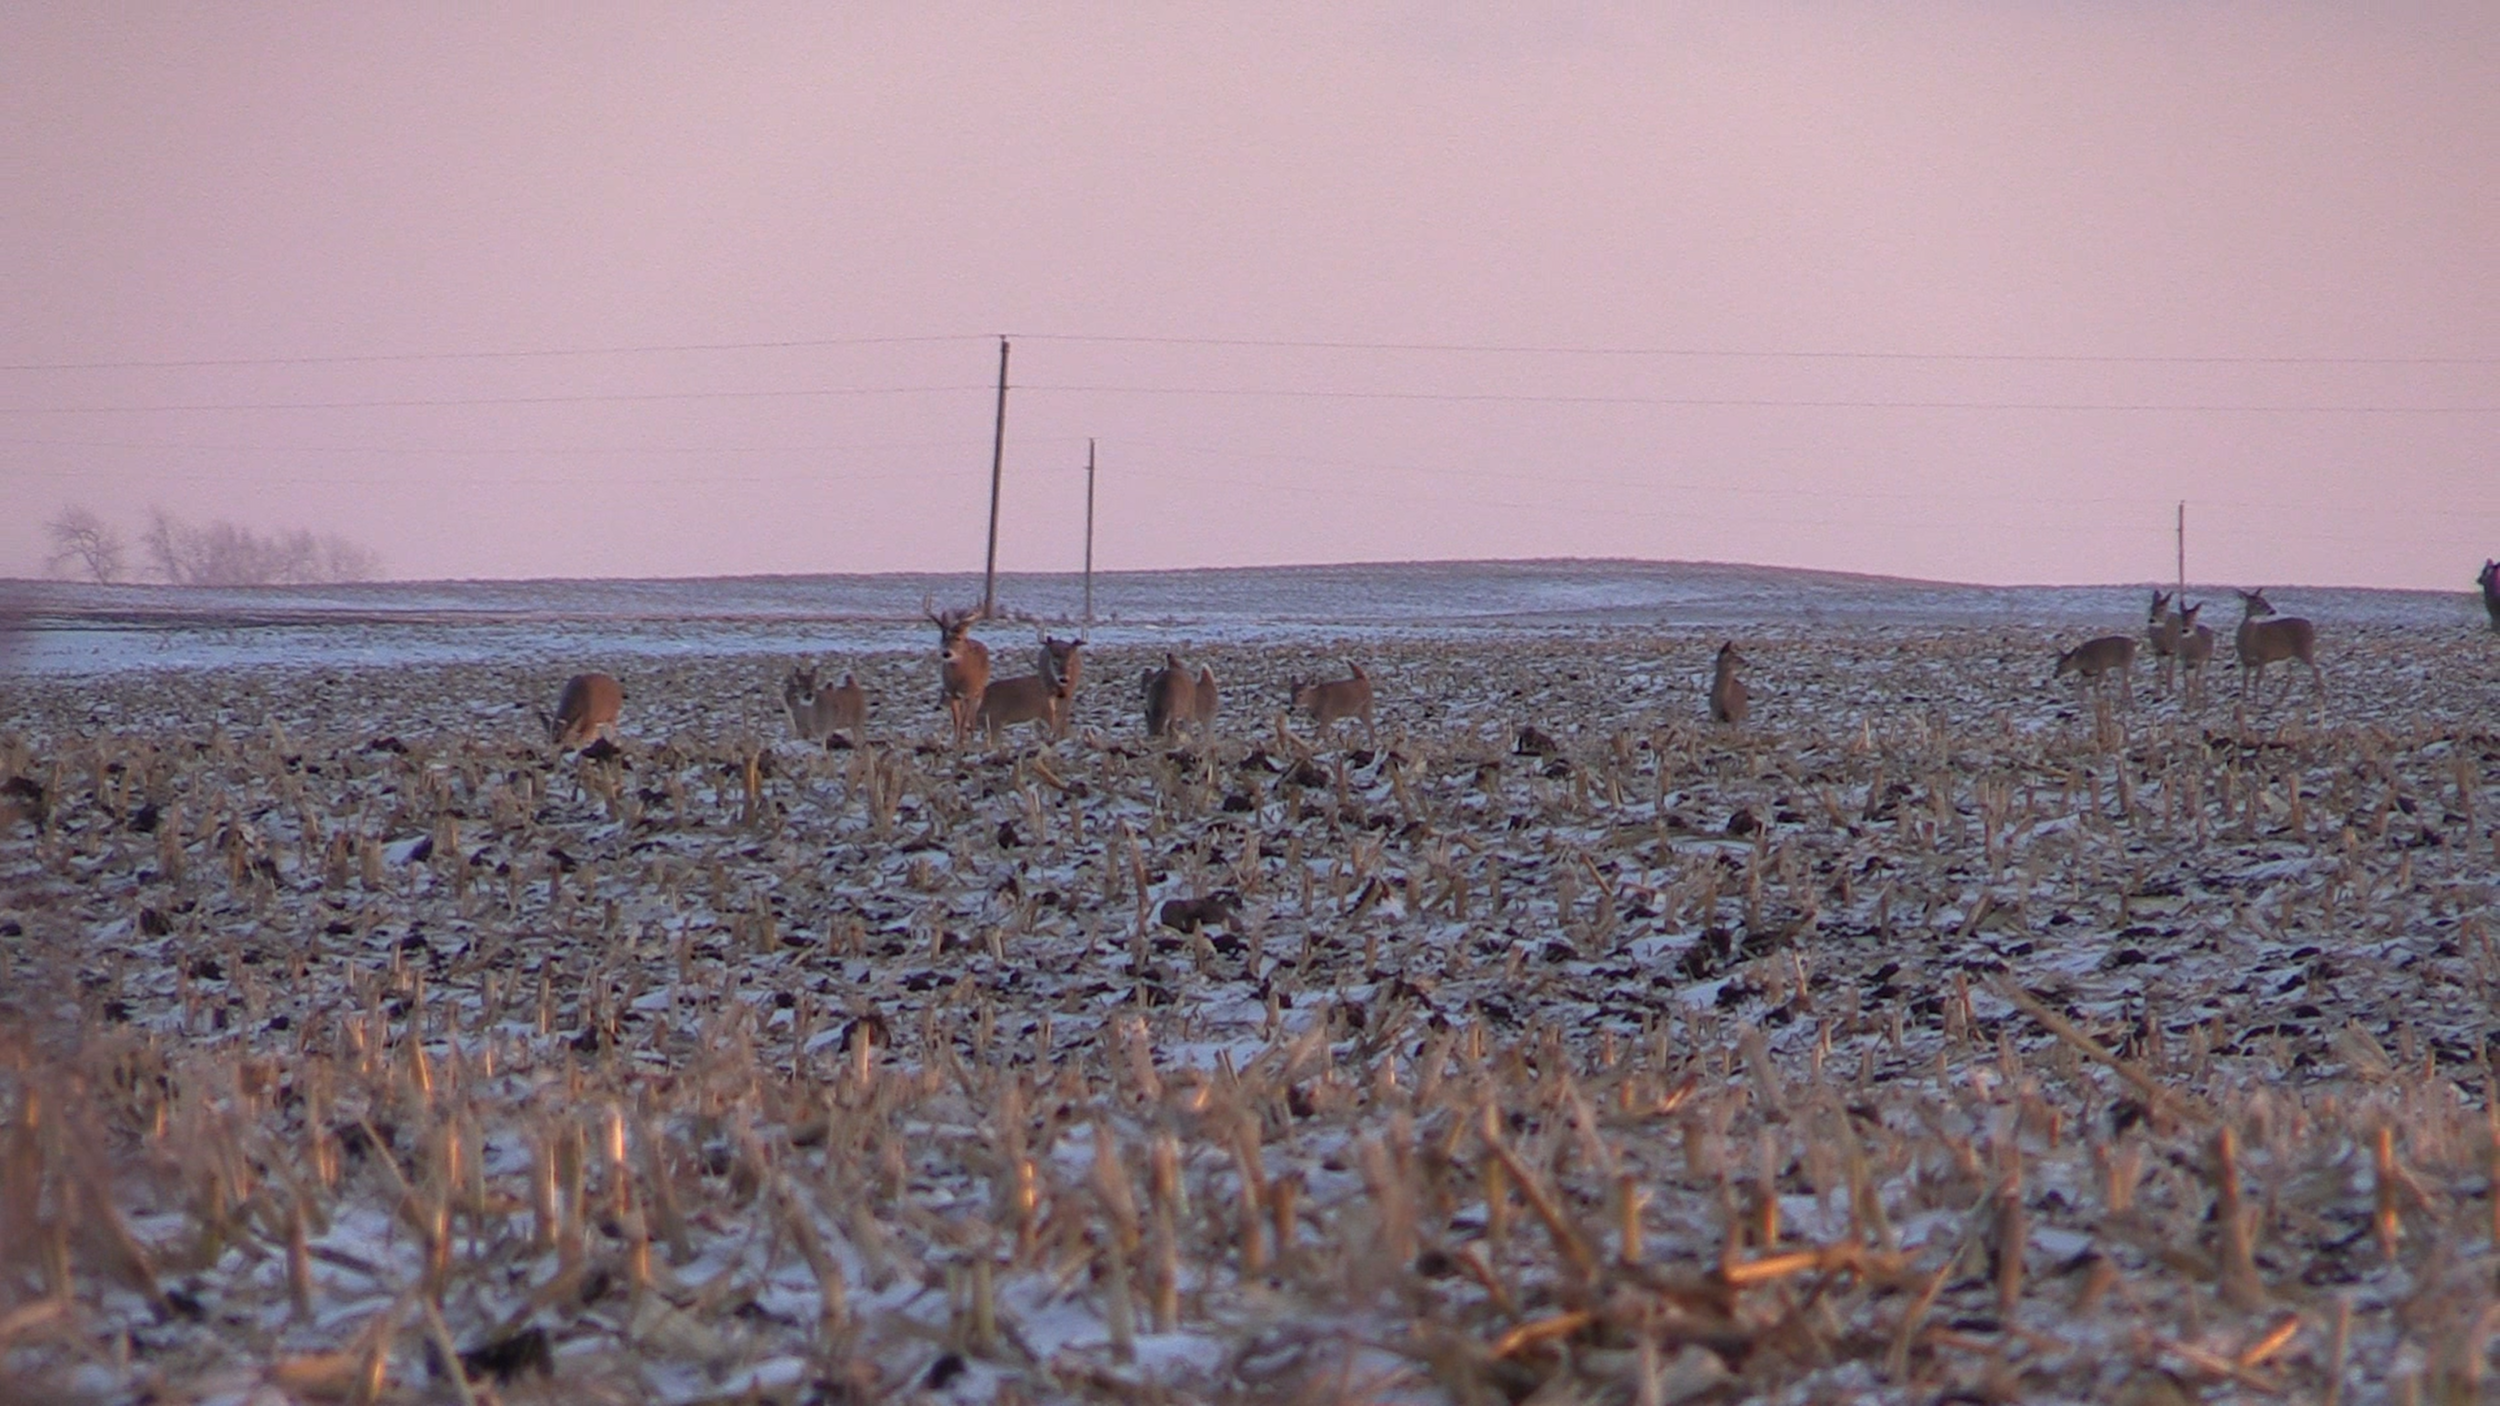 A screenshot from the video as I watched a number of deer head right at me.